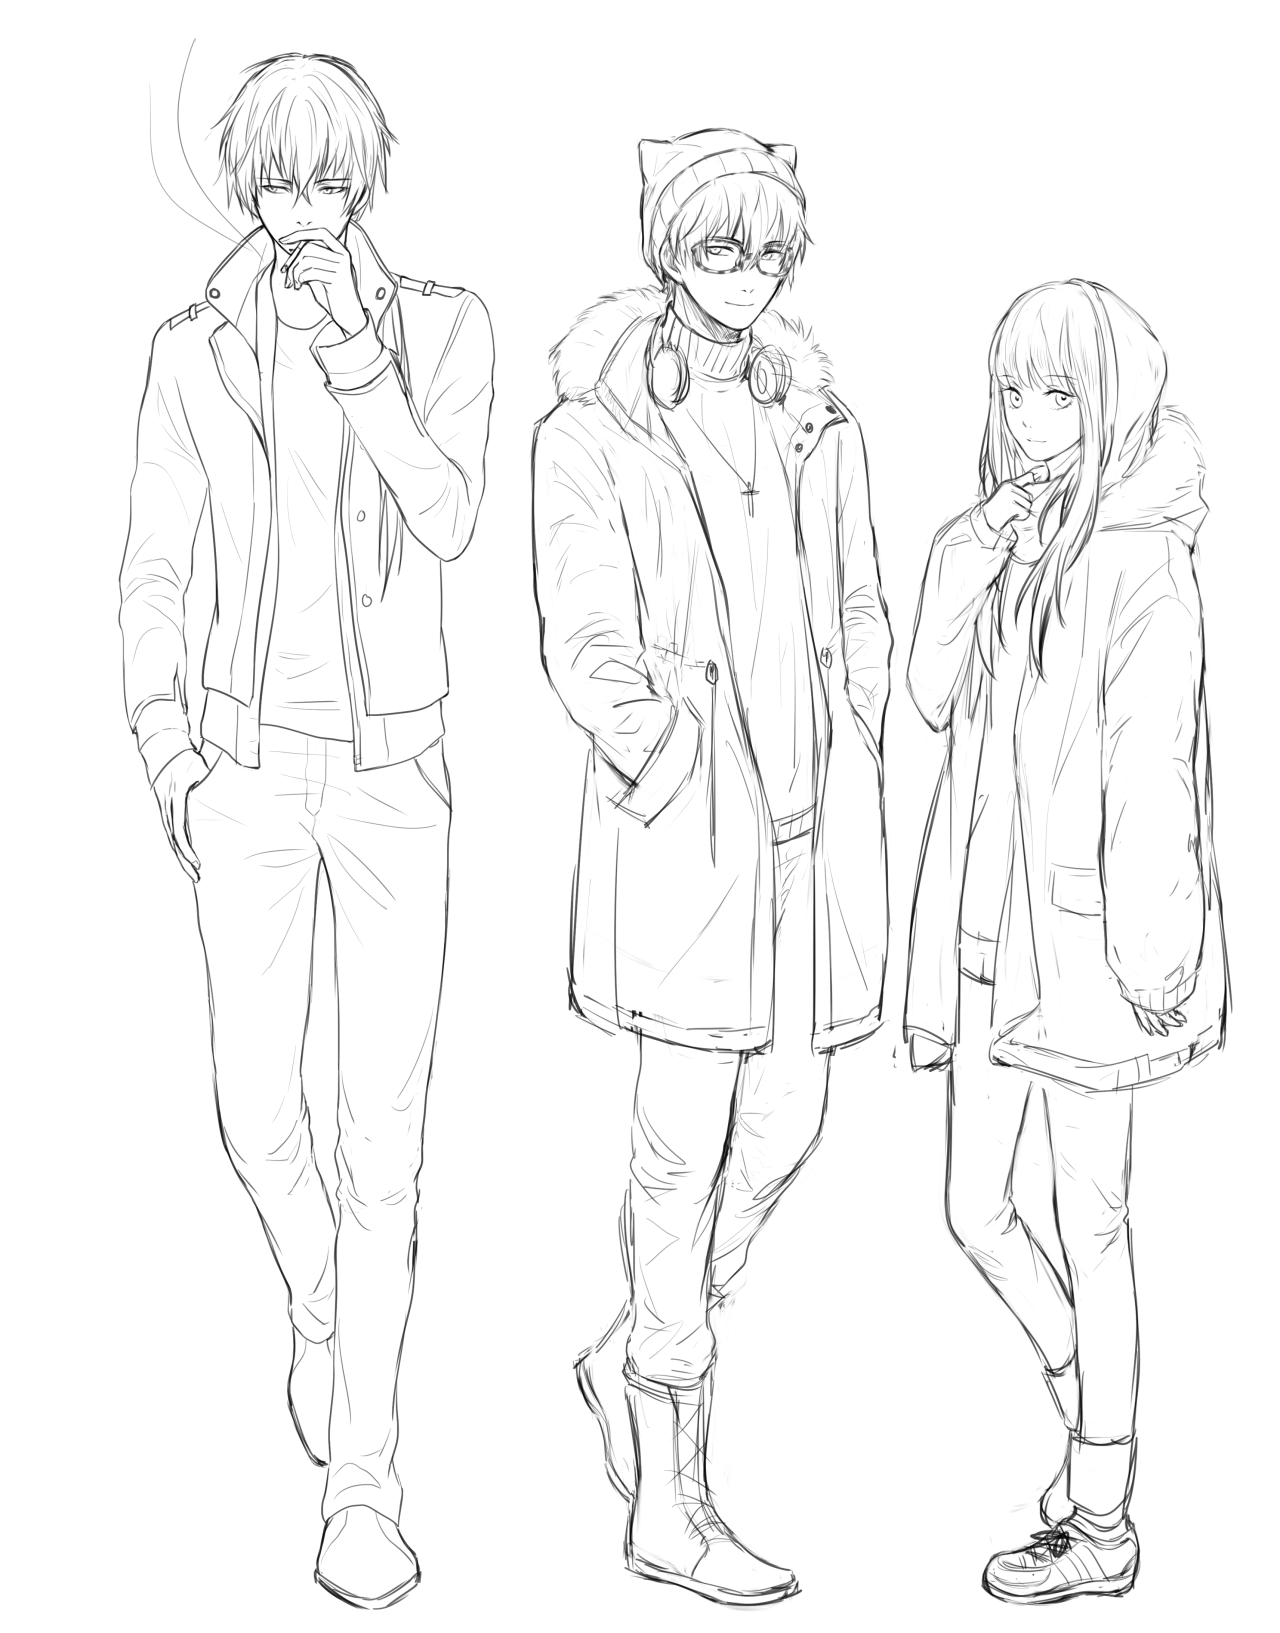 Kinlkeyl Wip Winter Clothes Gonna Draw The Whole Squad Xd Art Reference Poses Art Reference Winter Drawings